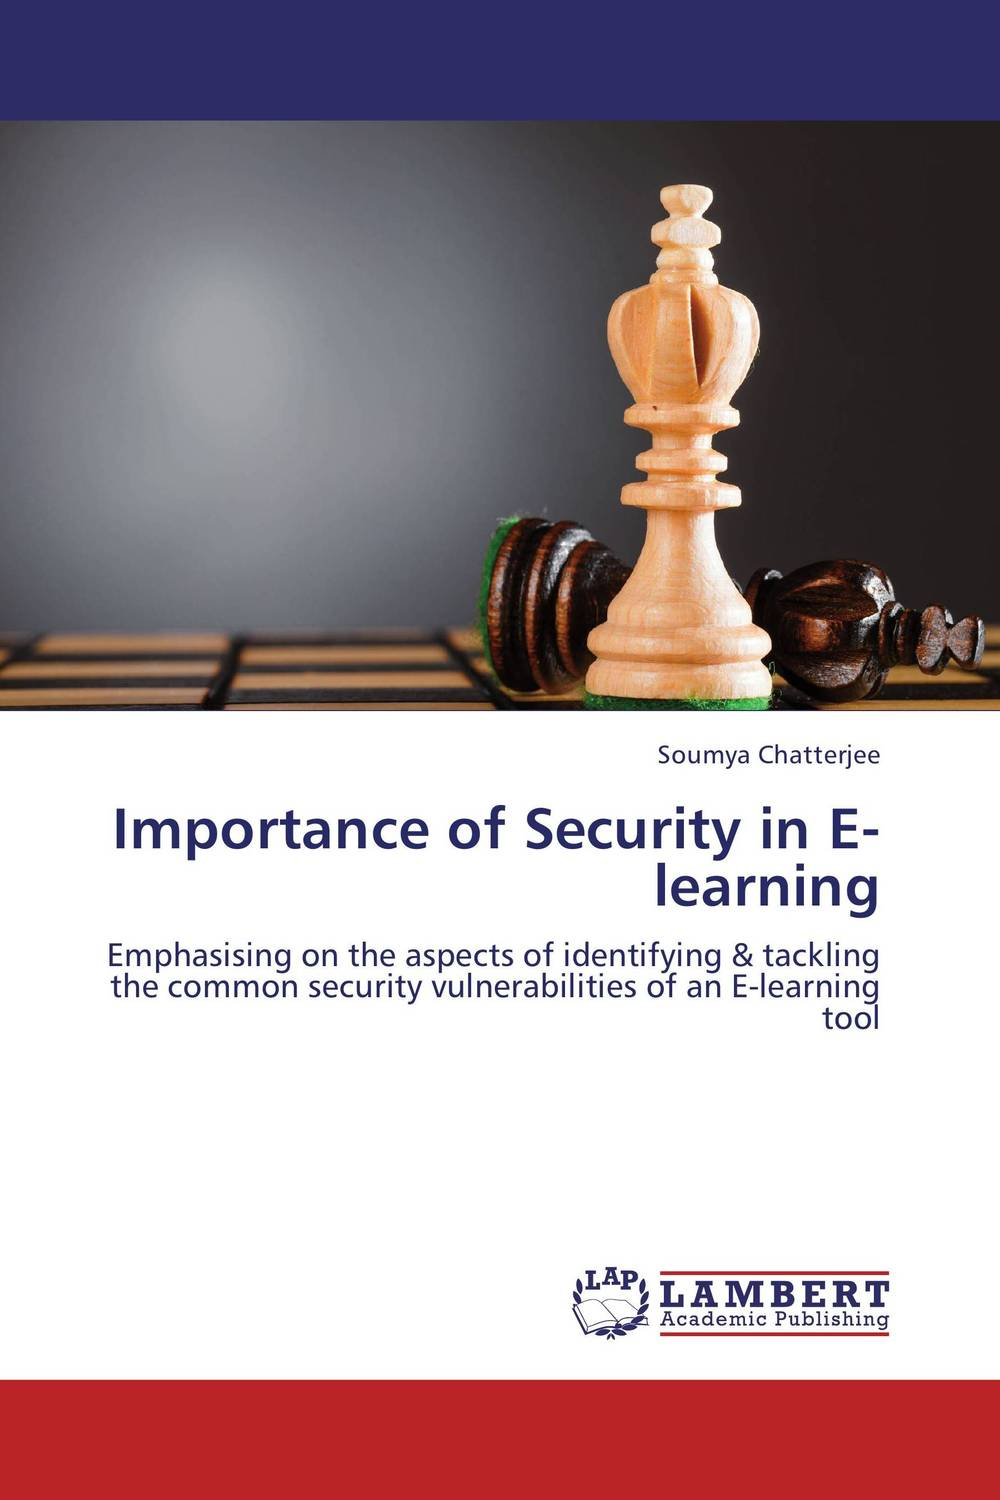 Importance of Security in E-learning james m kouzes learning leadership the five fundamentals of becoming an exemplary leader